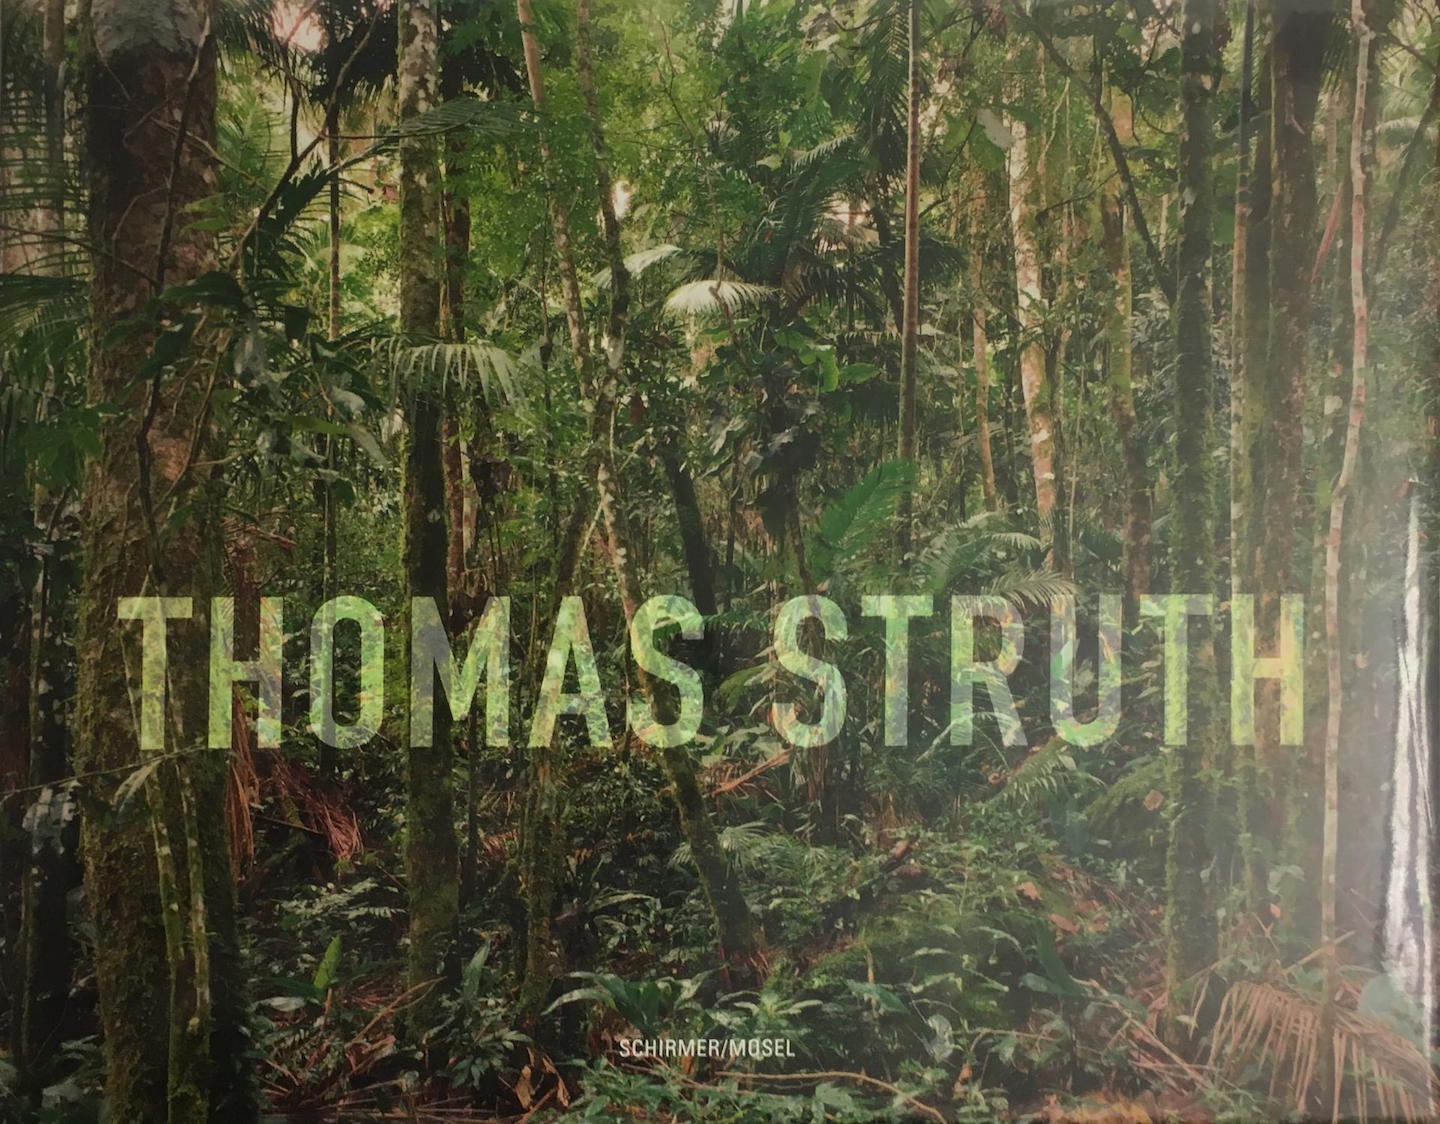 Thomas Struth: New Pictures from Paradise [SIGNED]